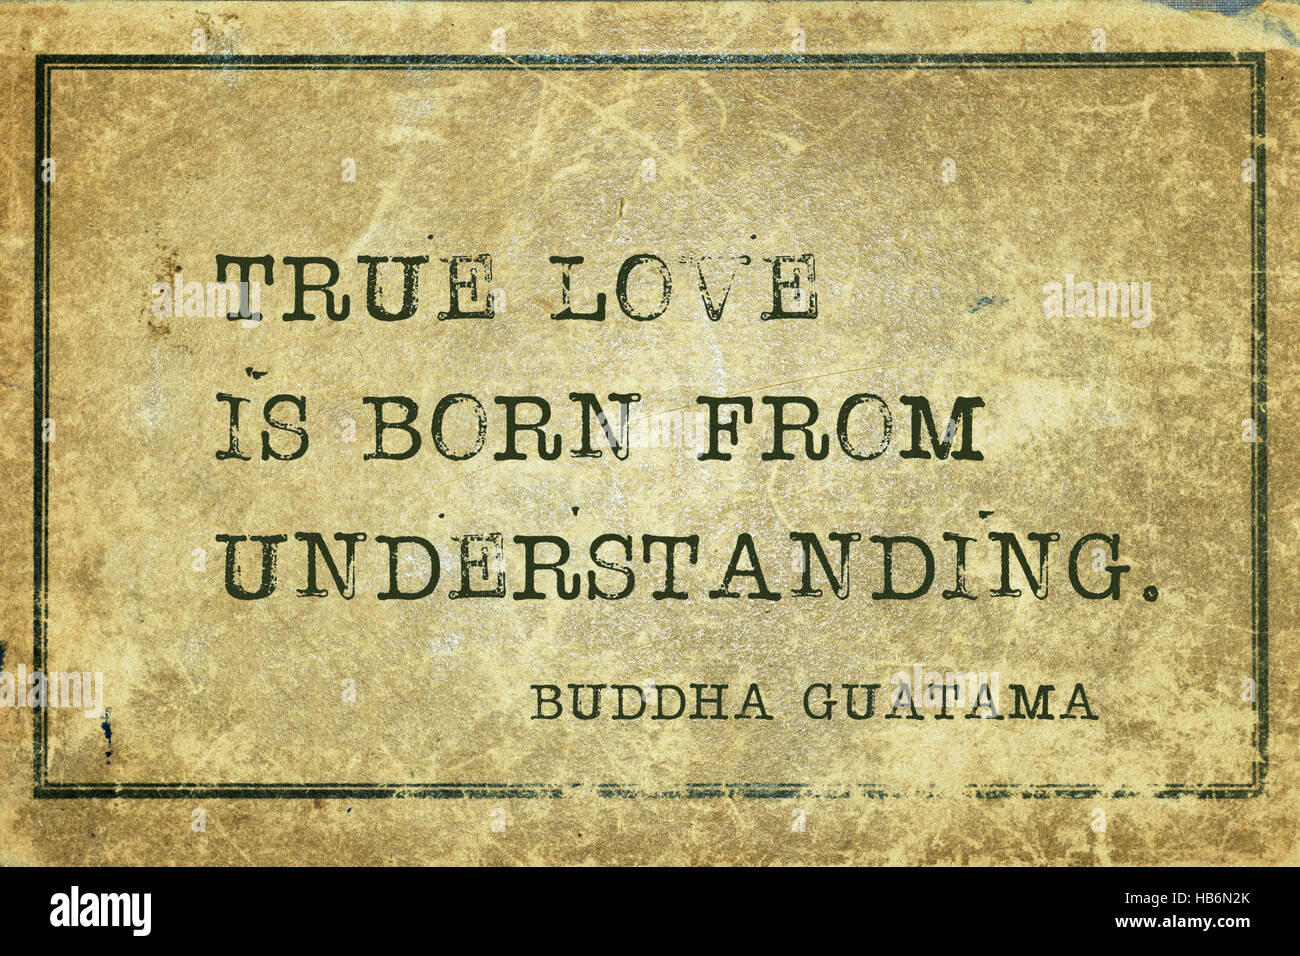 Stock True love is born from understanding famous Buddha quote printed on grunge vintage cardboard